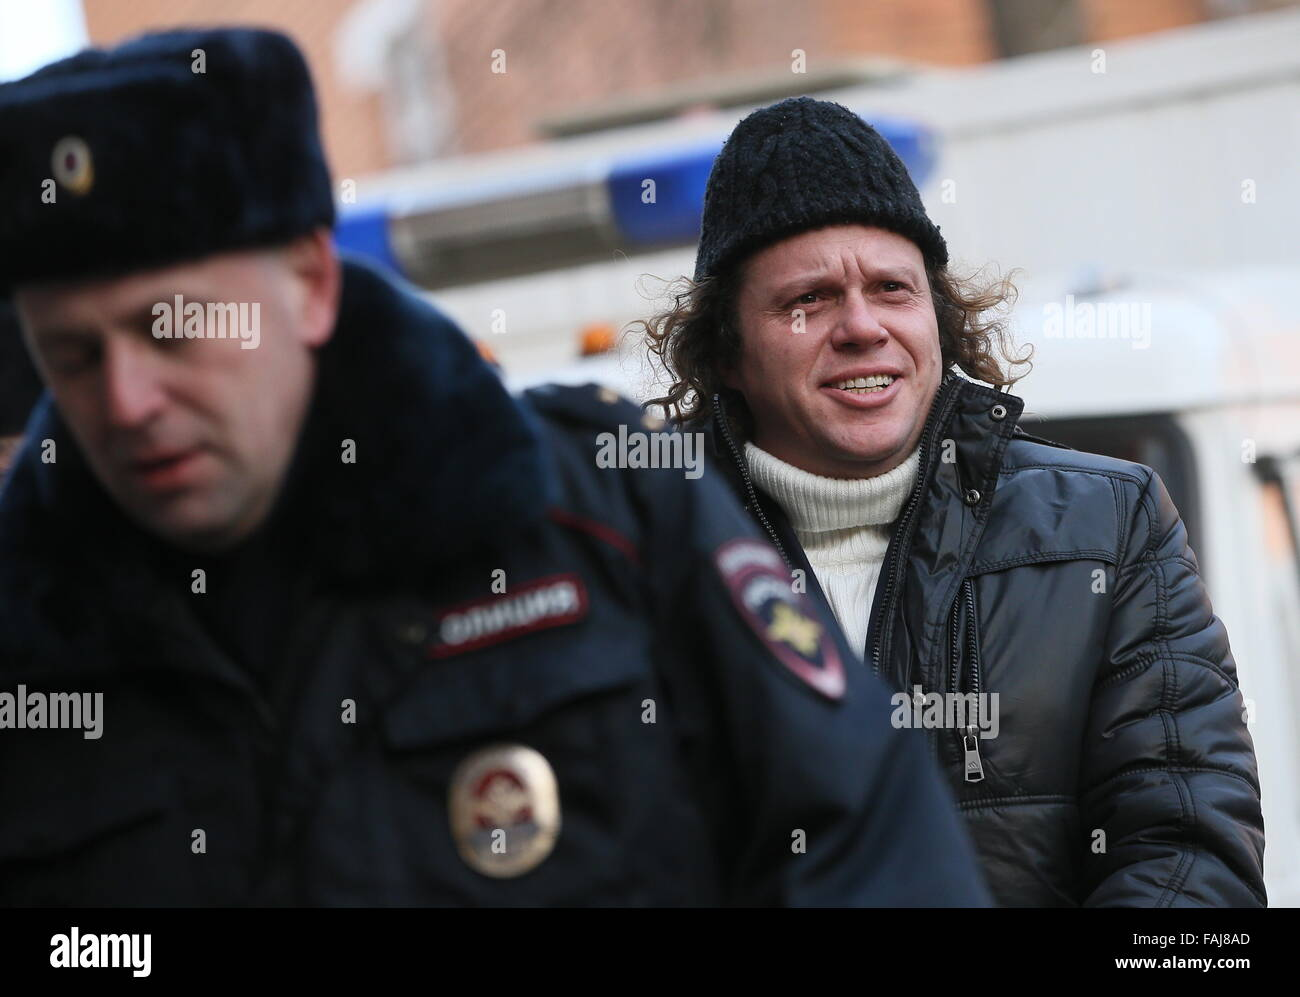 Moscow, Russia. 29th Dec, 2015. Russian tycoon Sergei Polonsky (R), charged with large scale fraud, seen ahead of - Stock Image